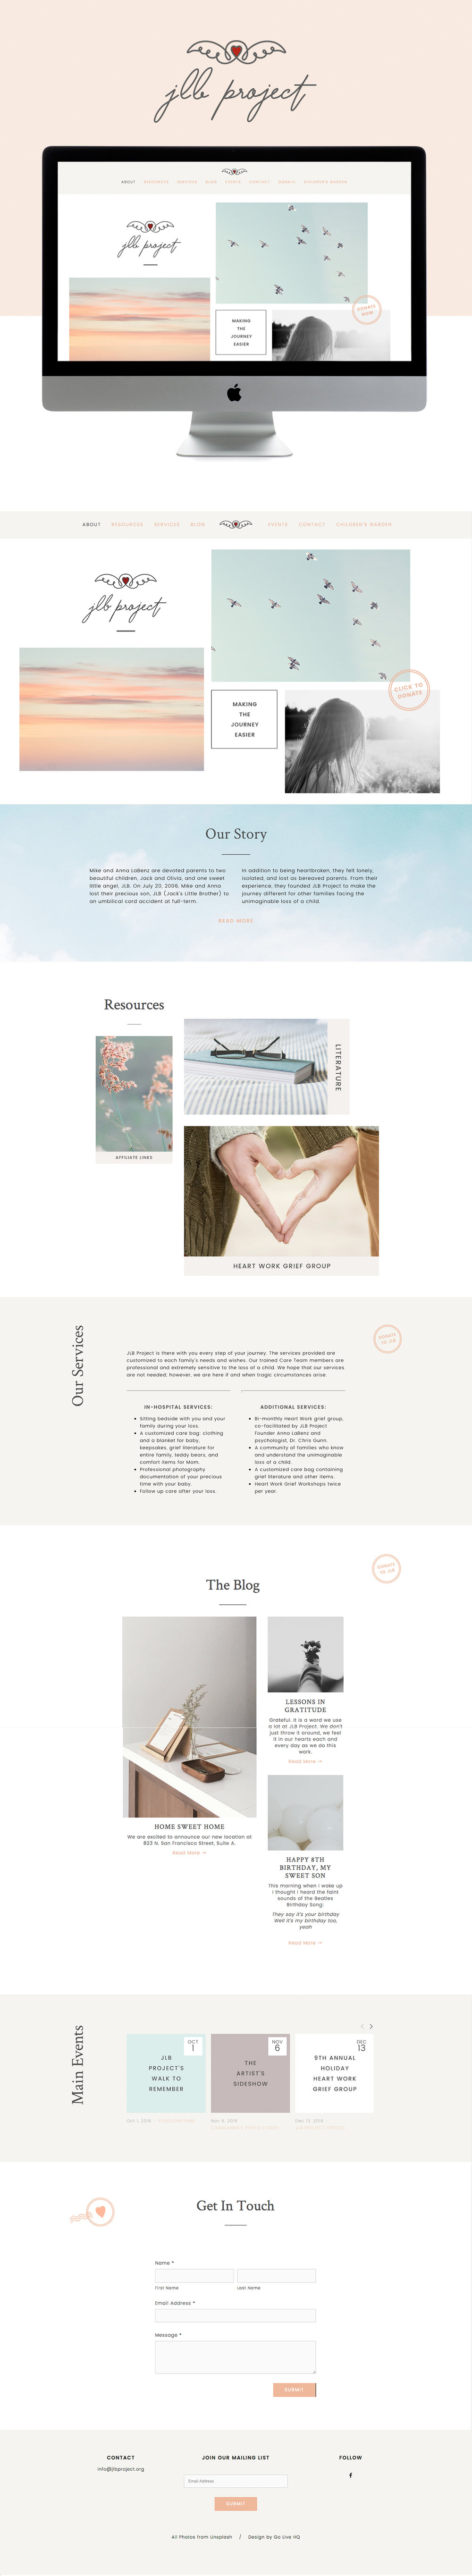 Calm, hopeful and warm Squarespace website design | designed by: golivehq.co